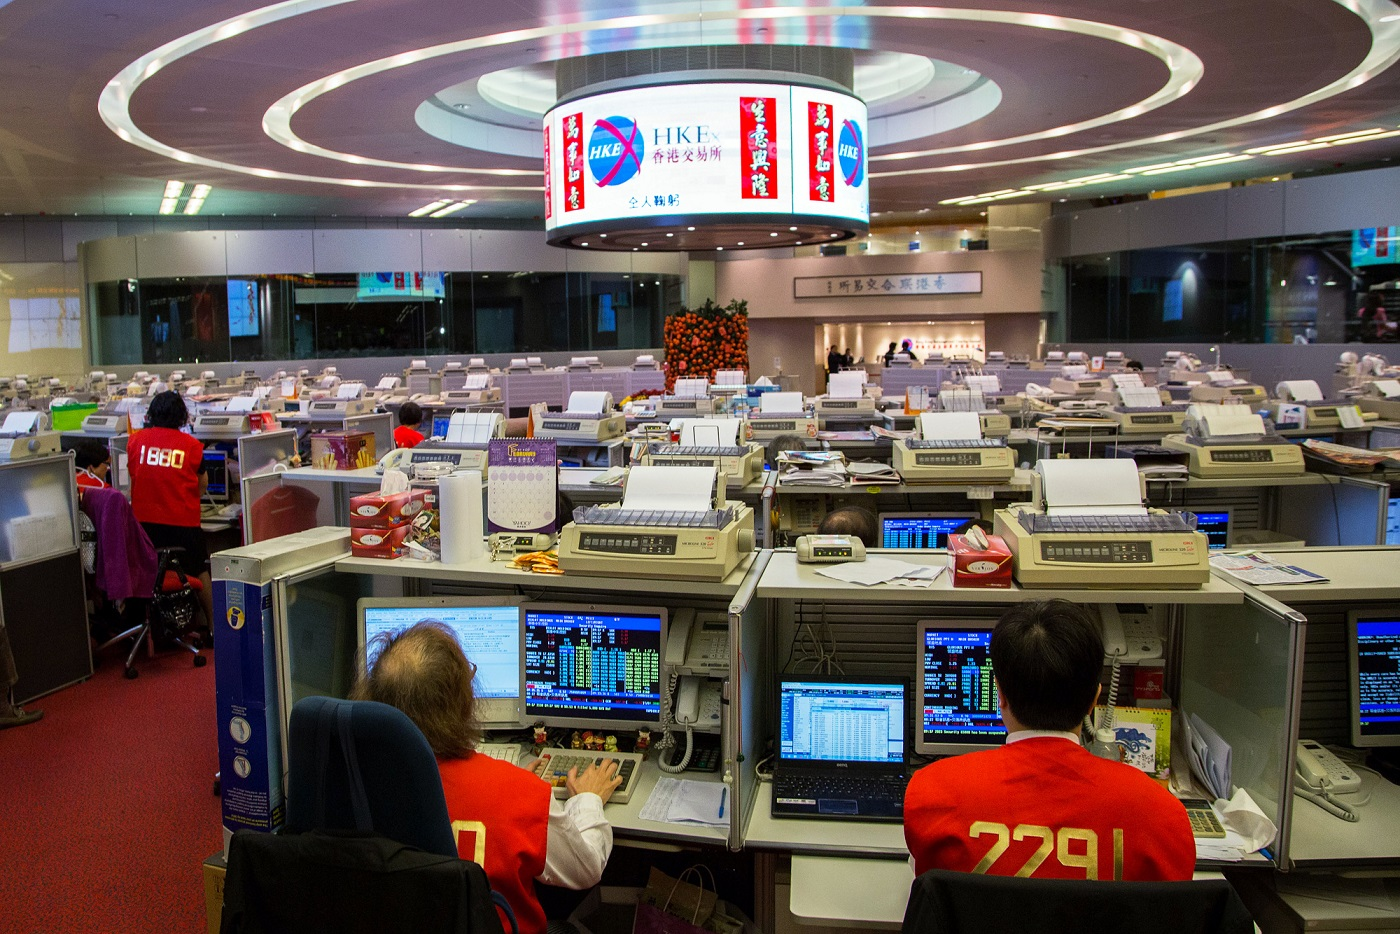 Traders work on the trading floor of the Hong Kong Stock Exchange during the first day of trading after Chinese New Year in Hong Kong, China, on Tuesday, Feb. 4, 2014. Hong Kong stocks tumbled on high volume, with the benchmark index poised to cap a 11 percent fall from a December peak, after weaker-than-expected manufacturing growth from the U.S. to China fueled a global equities rout. Photographer: Lam Yik Fei/Bloomberg via Getty Images